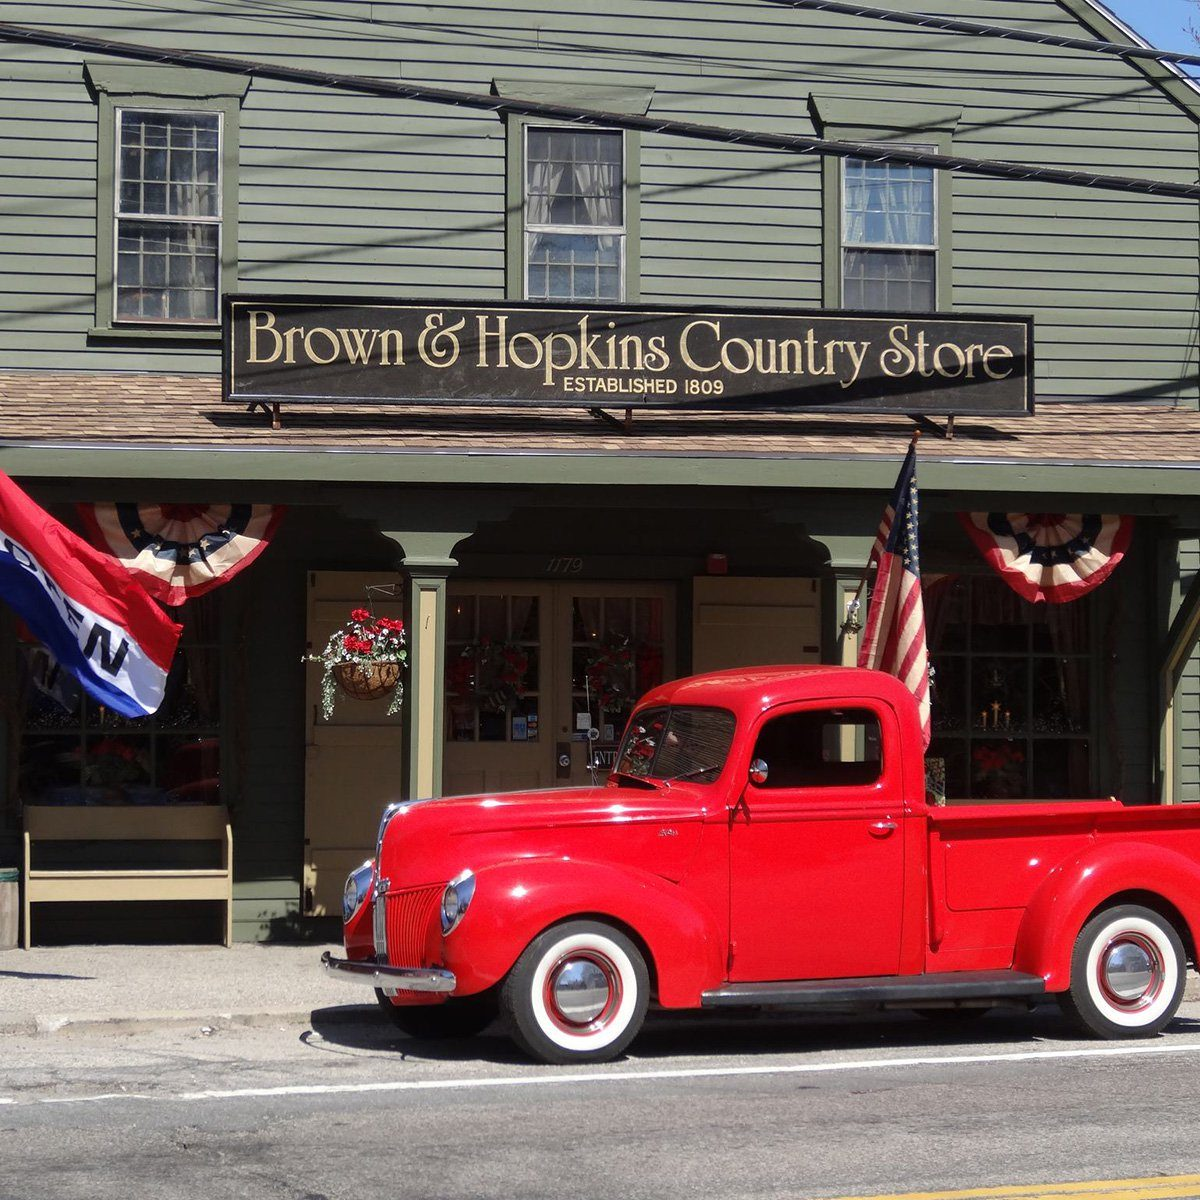 Brown & Hopkins Country Store